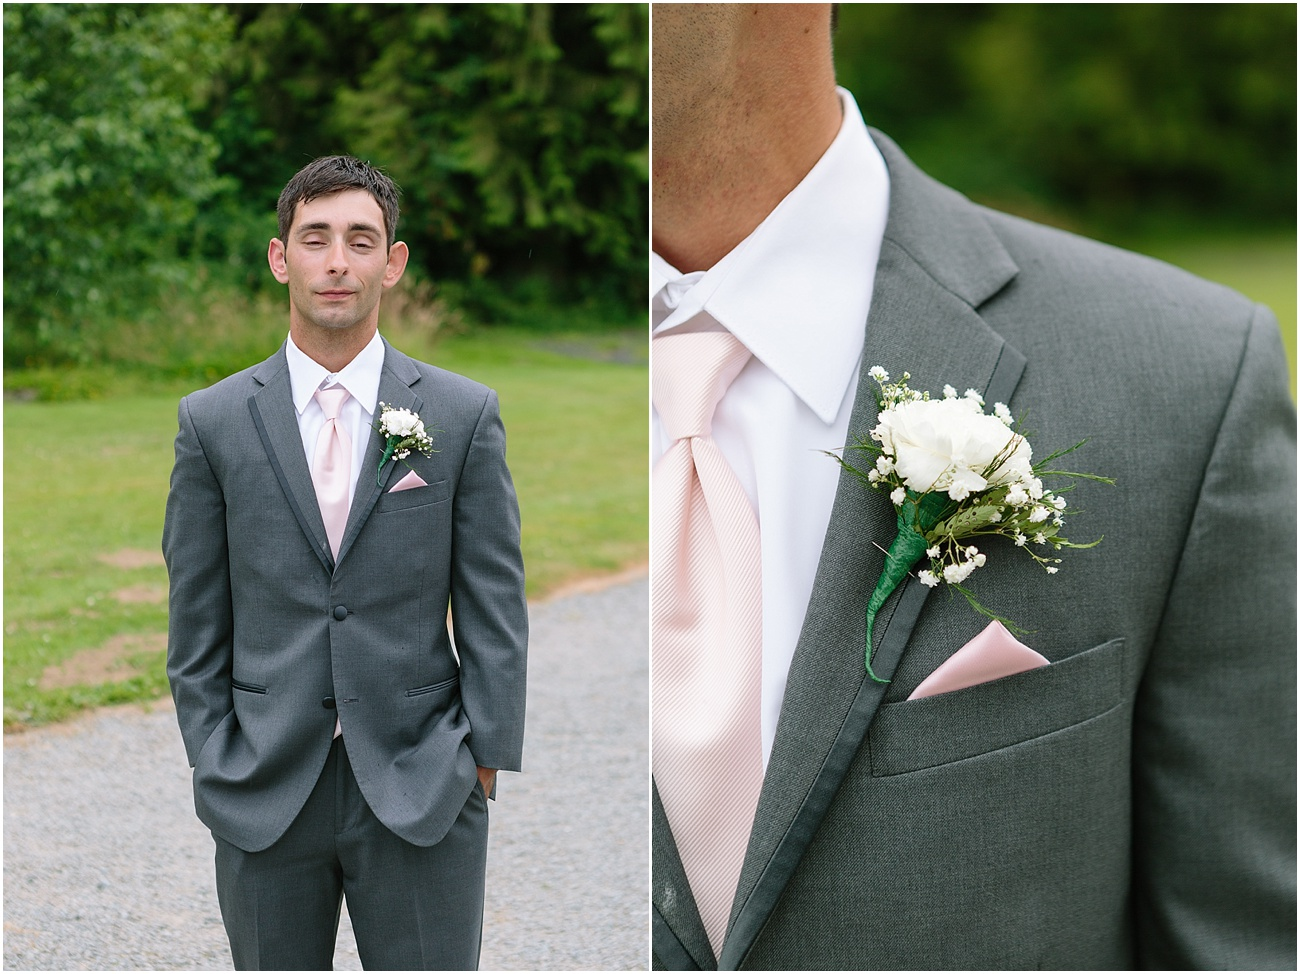 Tauzin_Wedding_Tazer_Valley_Farm_Stanwood_Washington__0059